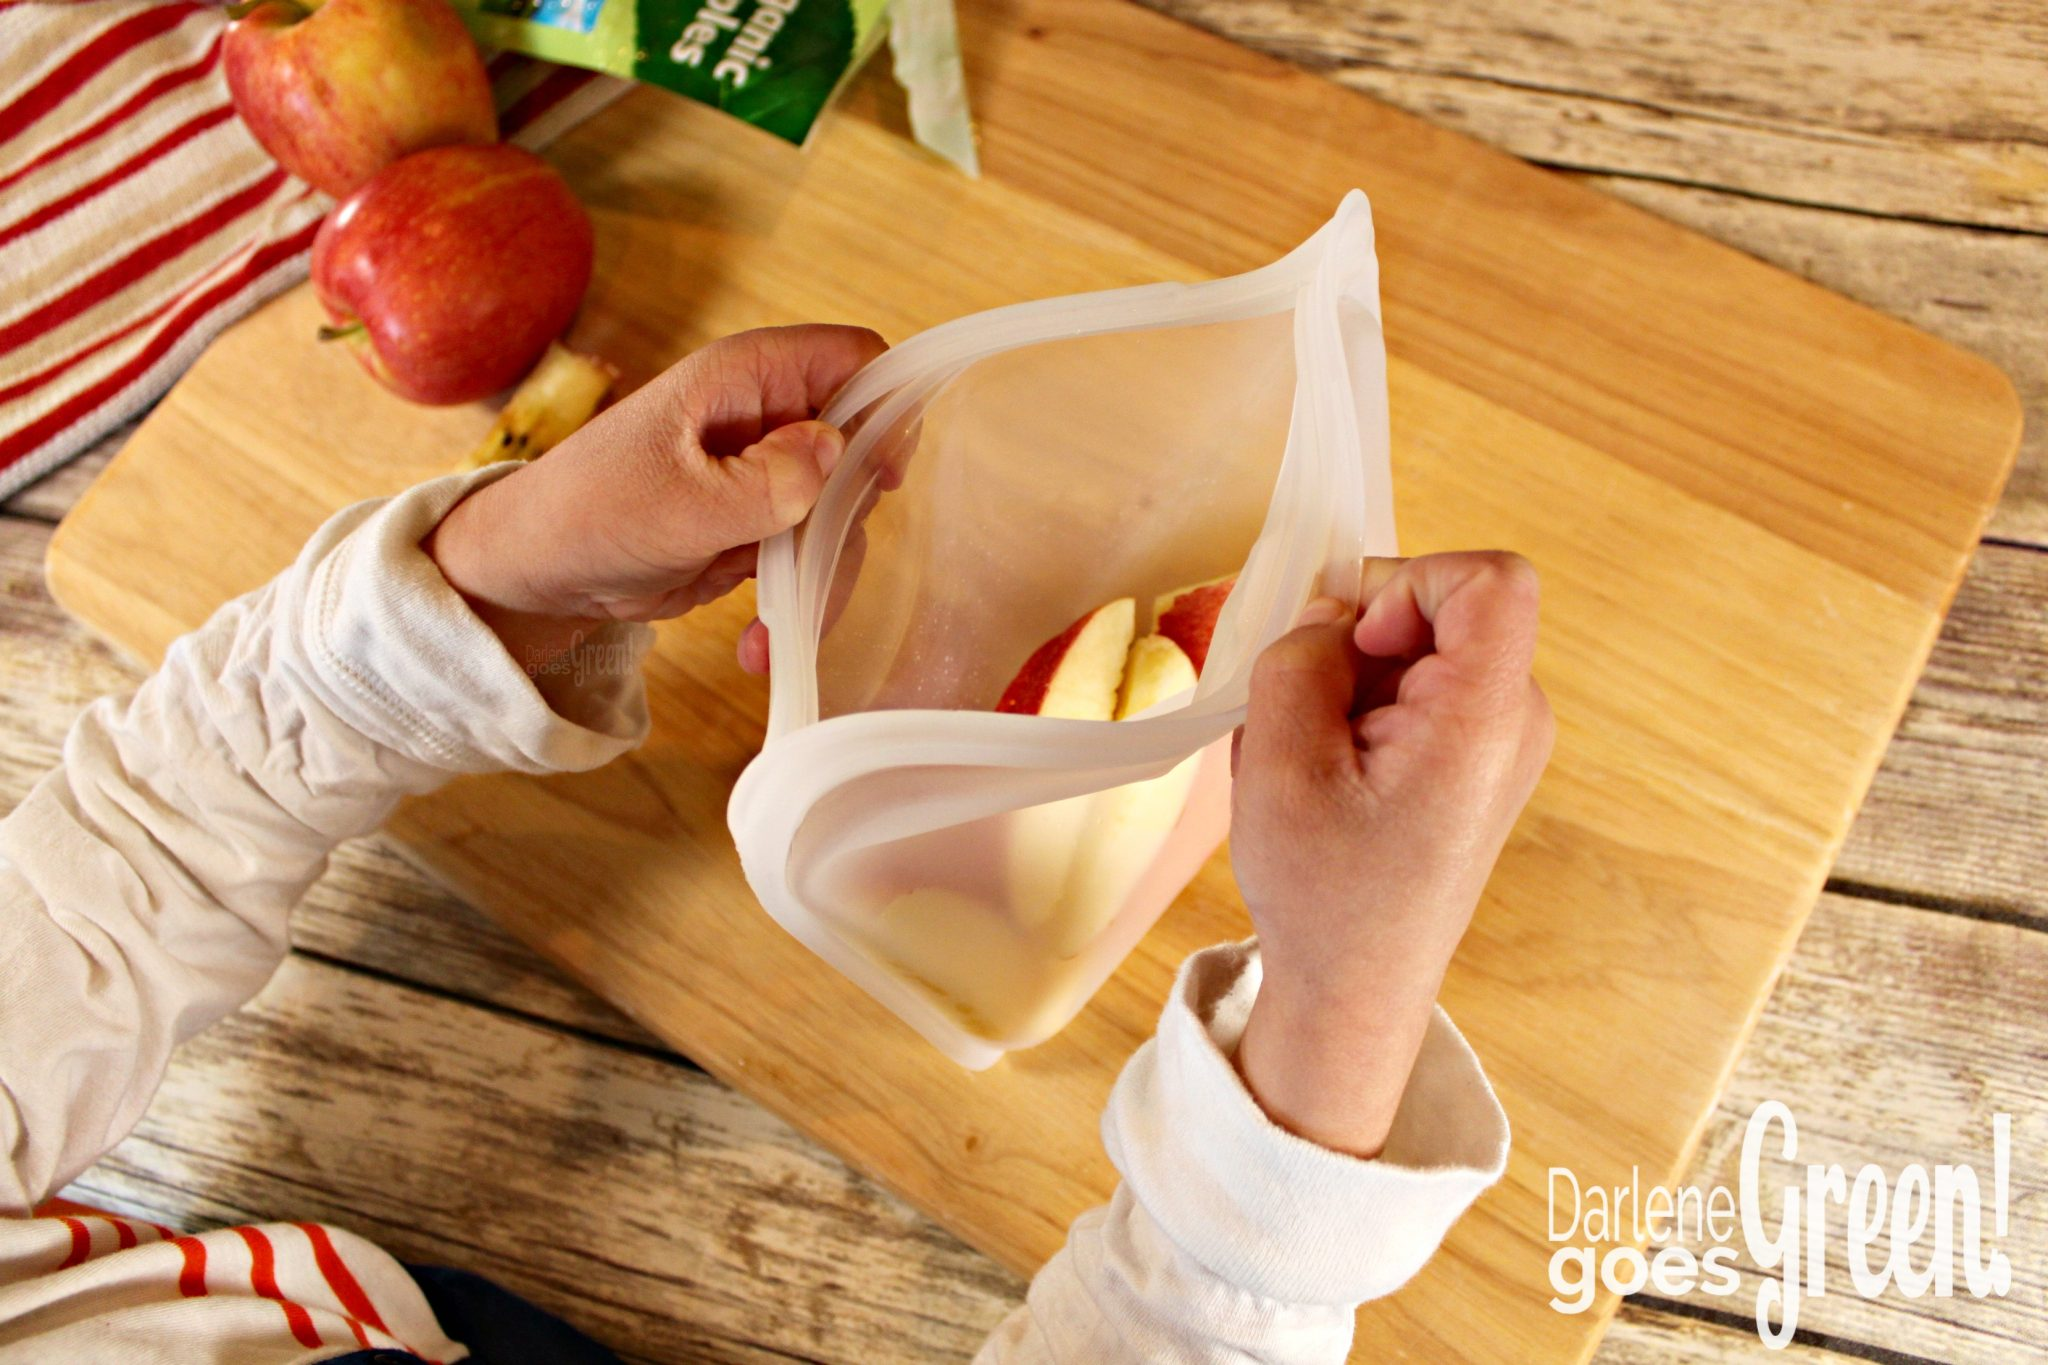 christian singles in sandwich This video provided by wwwkraftfoodscom demonstrates quick sandwich ideas with kraft singles our chef will demonstrate how to jazz up a ho-hum sandwich.